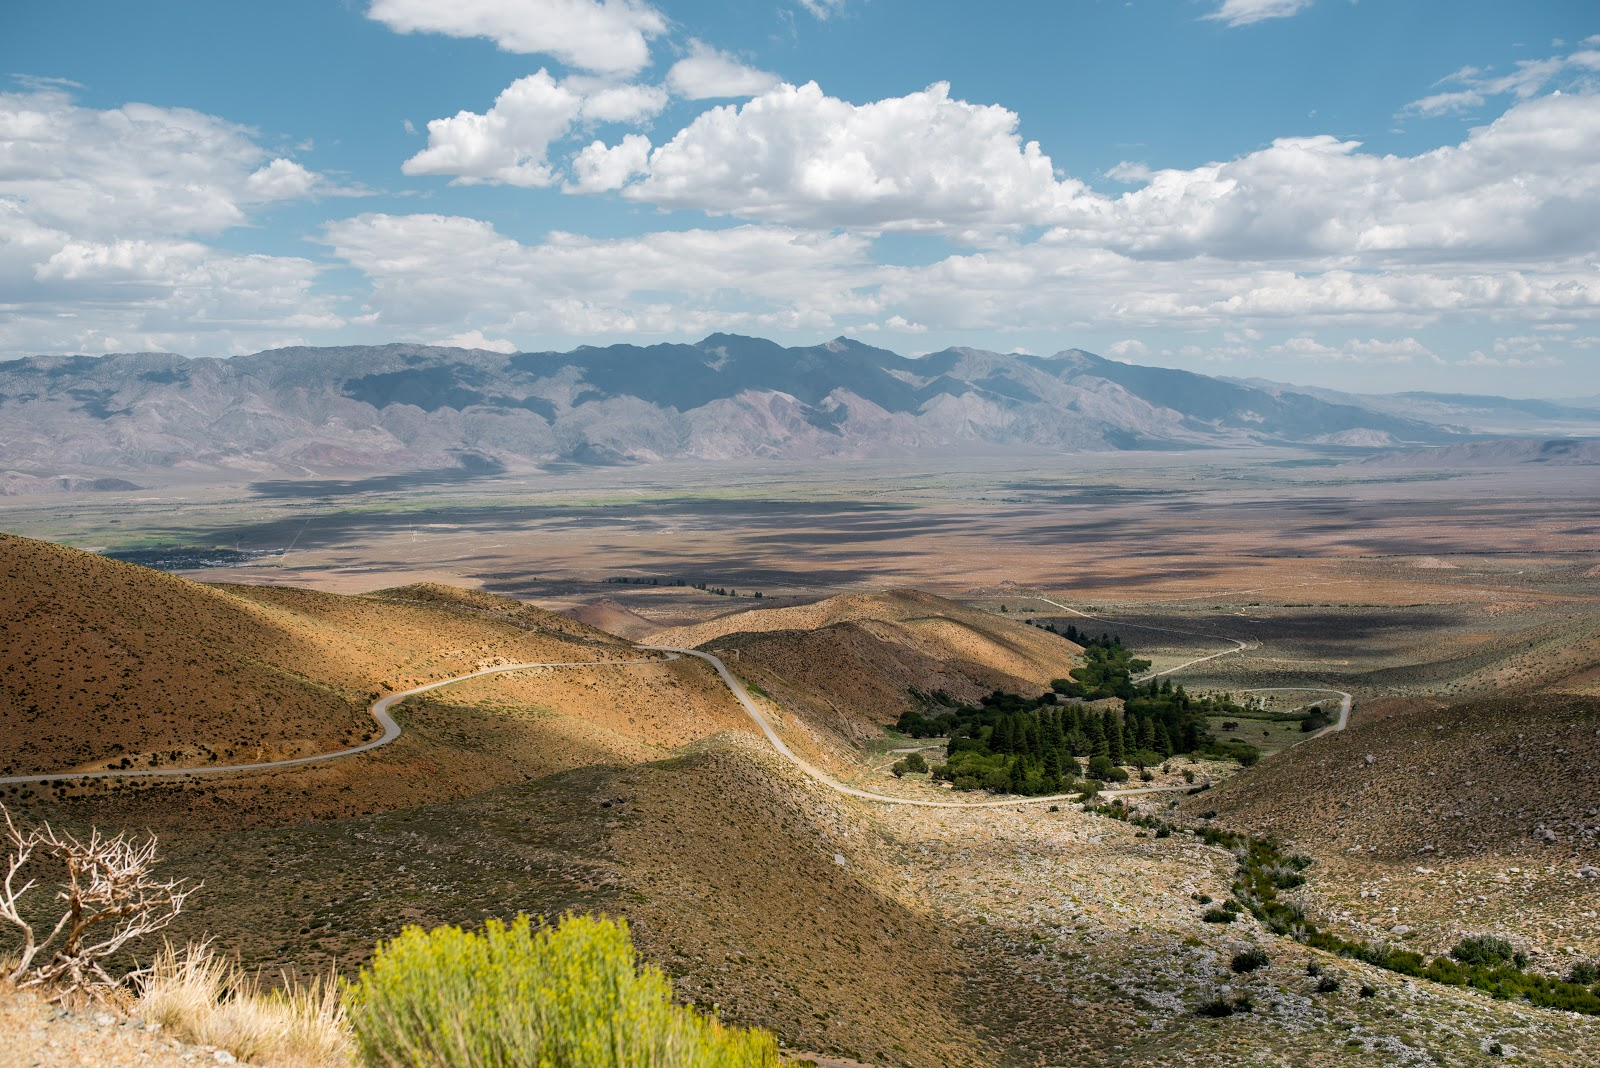 Cycling Owens Valley - Onion Valley Road, hairpins, valley mountains, clouds and sky